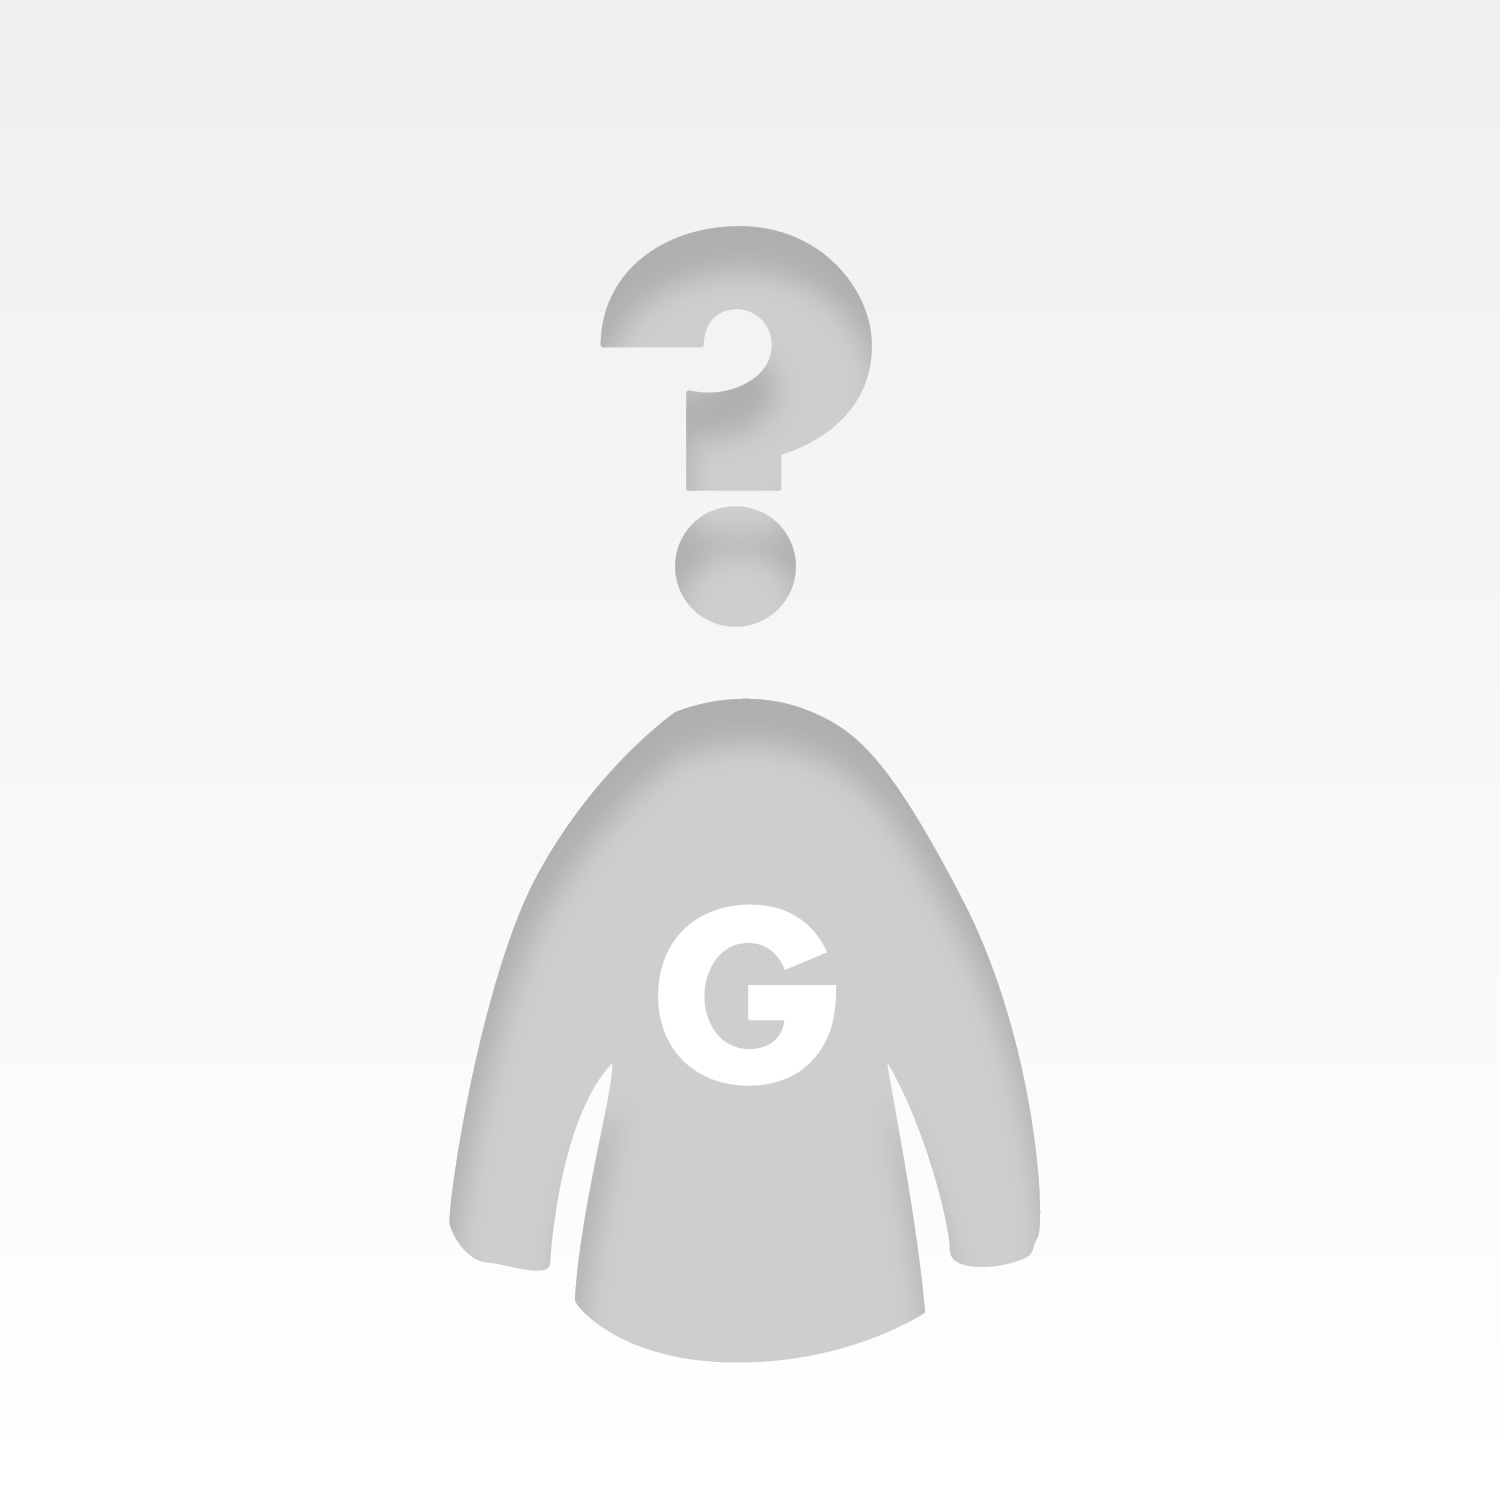 The Glogsterblueberry's avatar